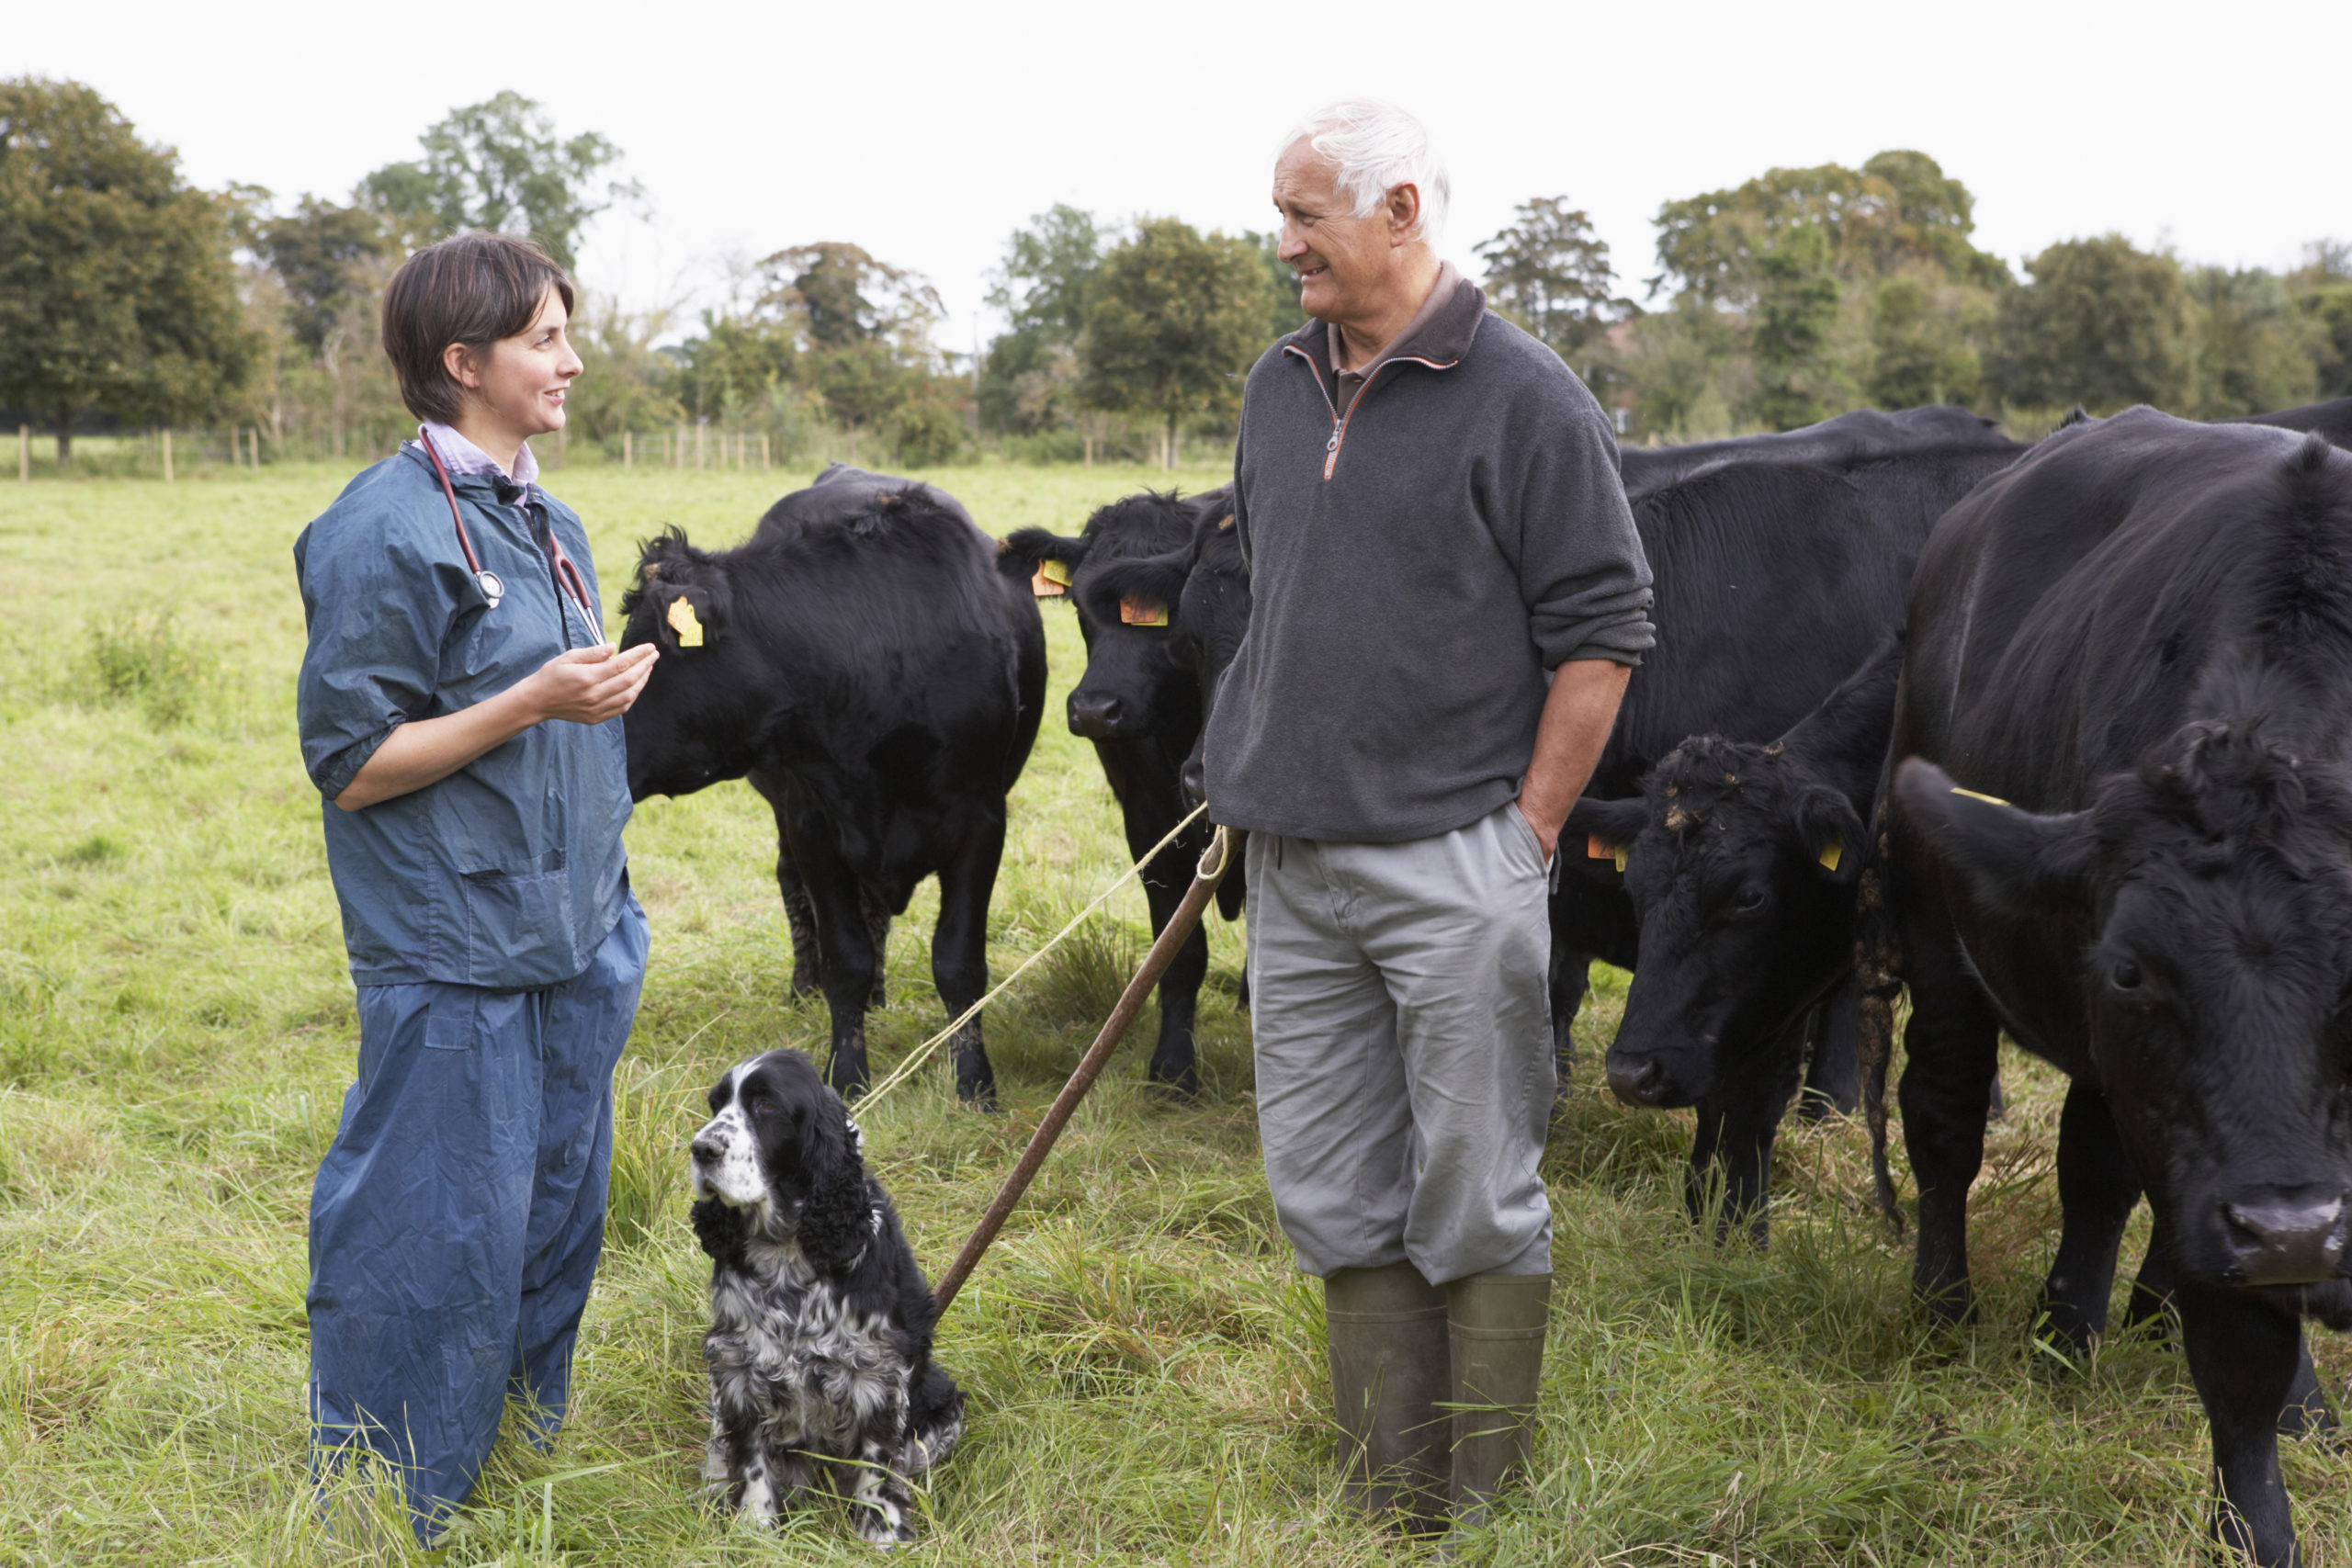 Vet and farmer in a field with cows and dogs - Bovine TB